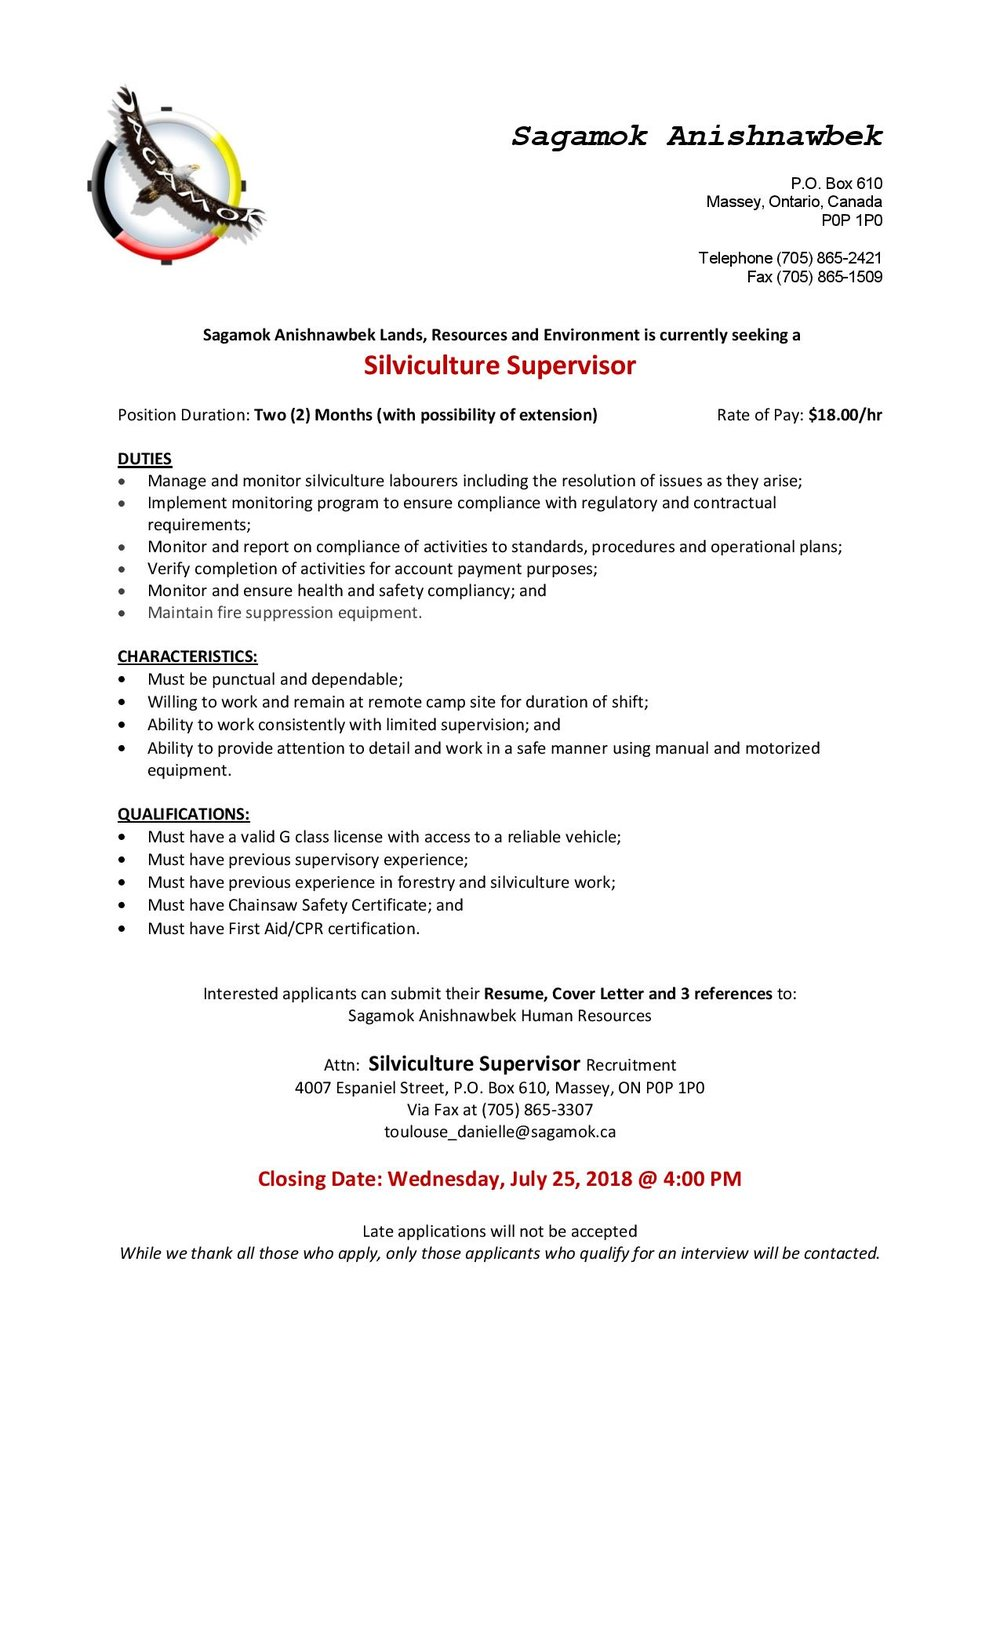 LRE Brushing Job Posting_Supervisor-page-001.jpg